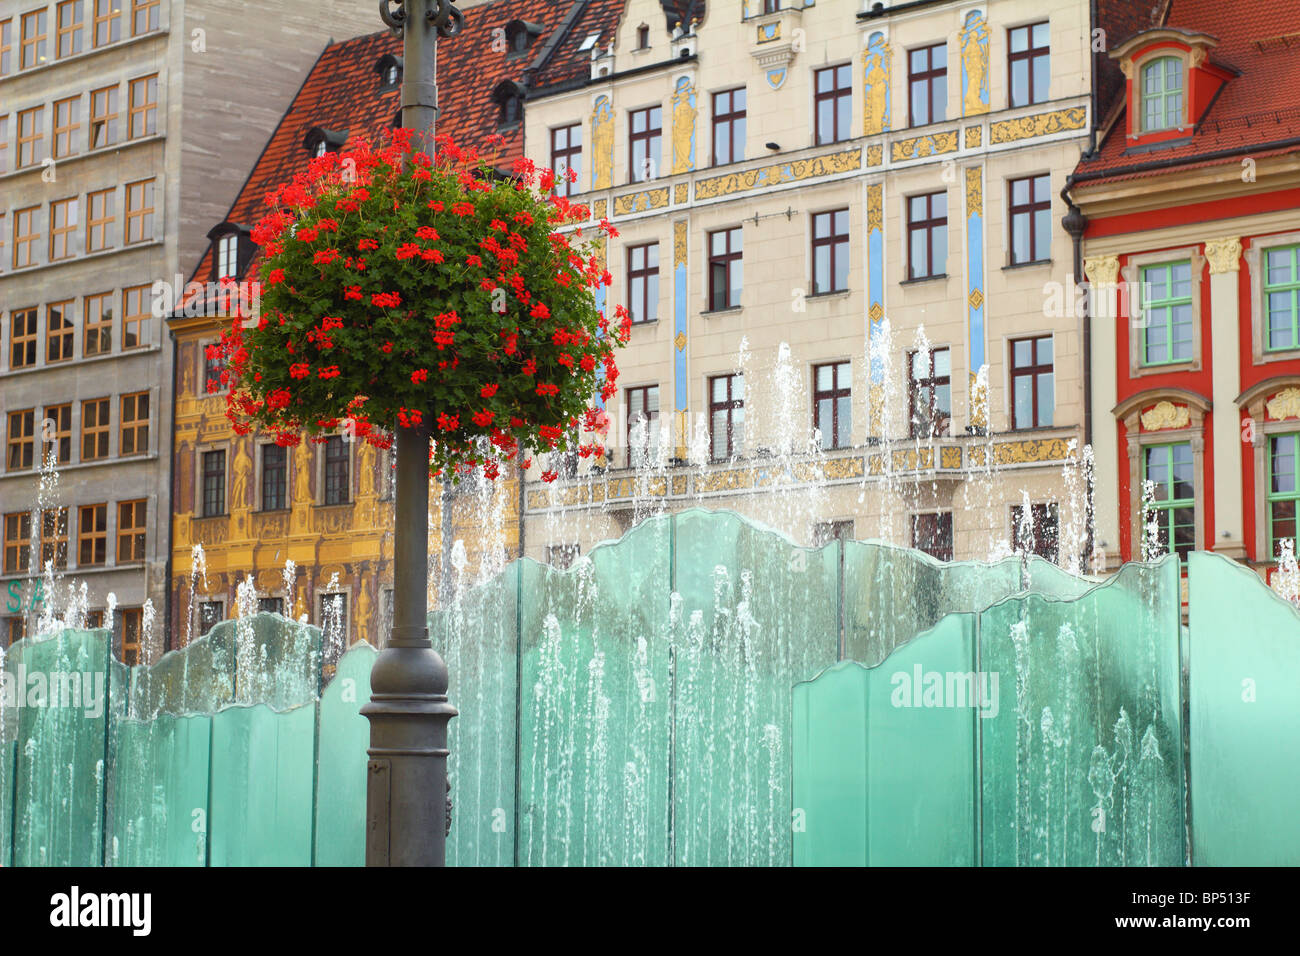 Fountain Wroclaw Old Market Lower Silesia Poland - Stock Image